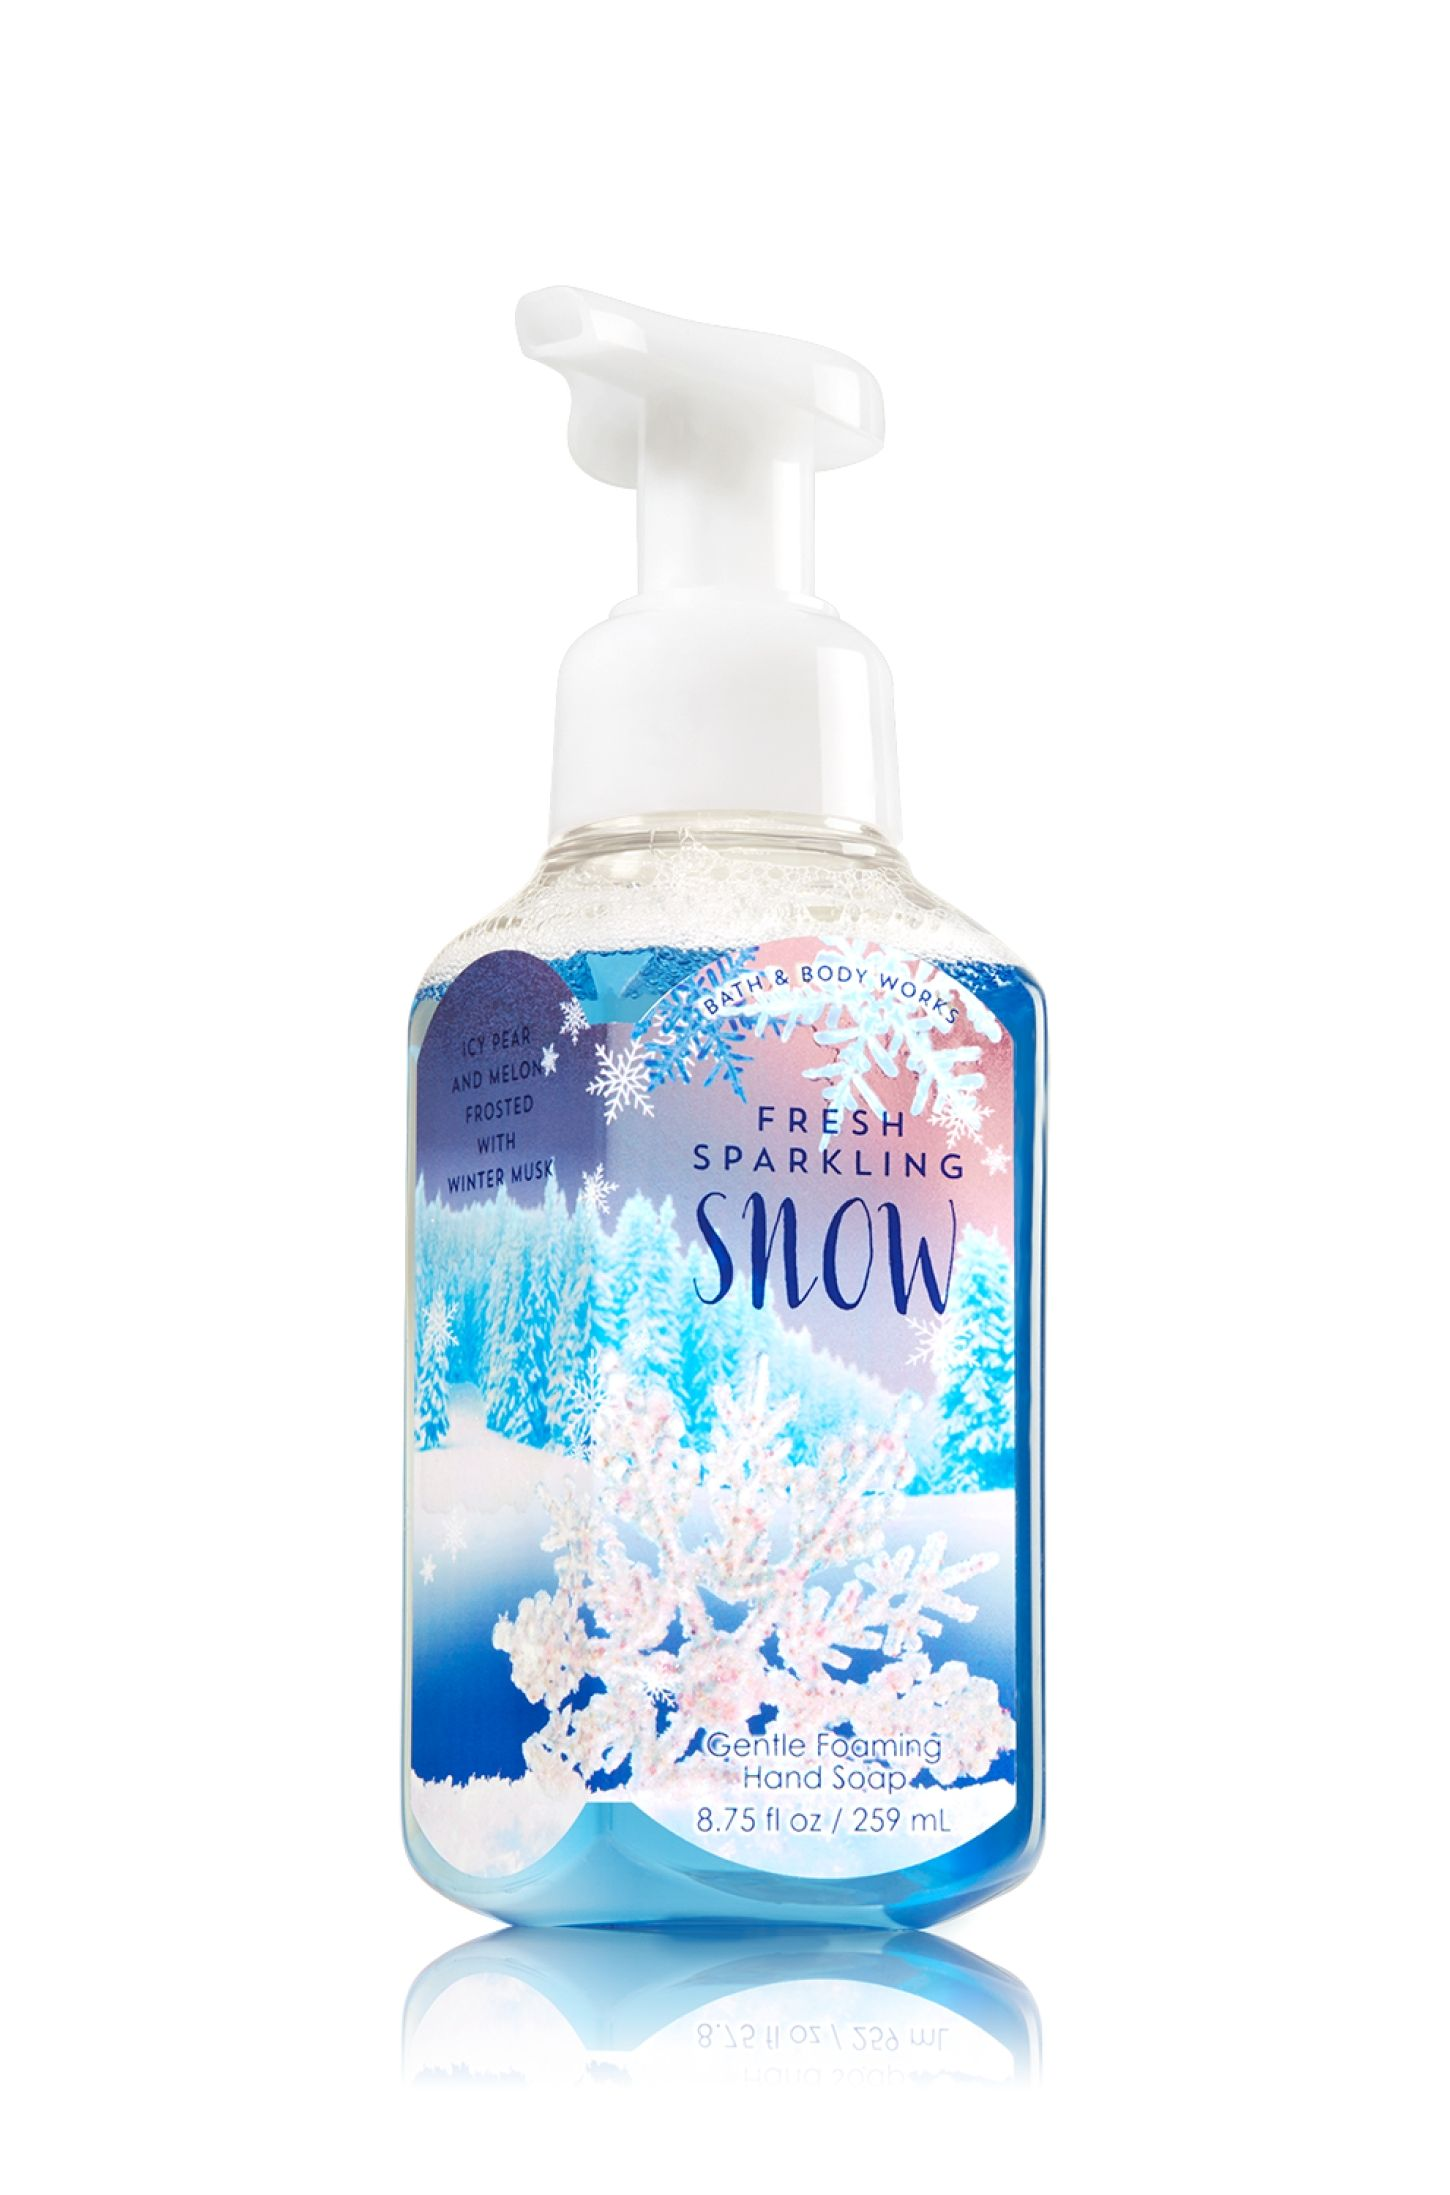 Fresh Sparkling Snow Gentle Foaming Hand Soap Soap Sanitizer